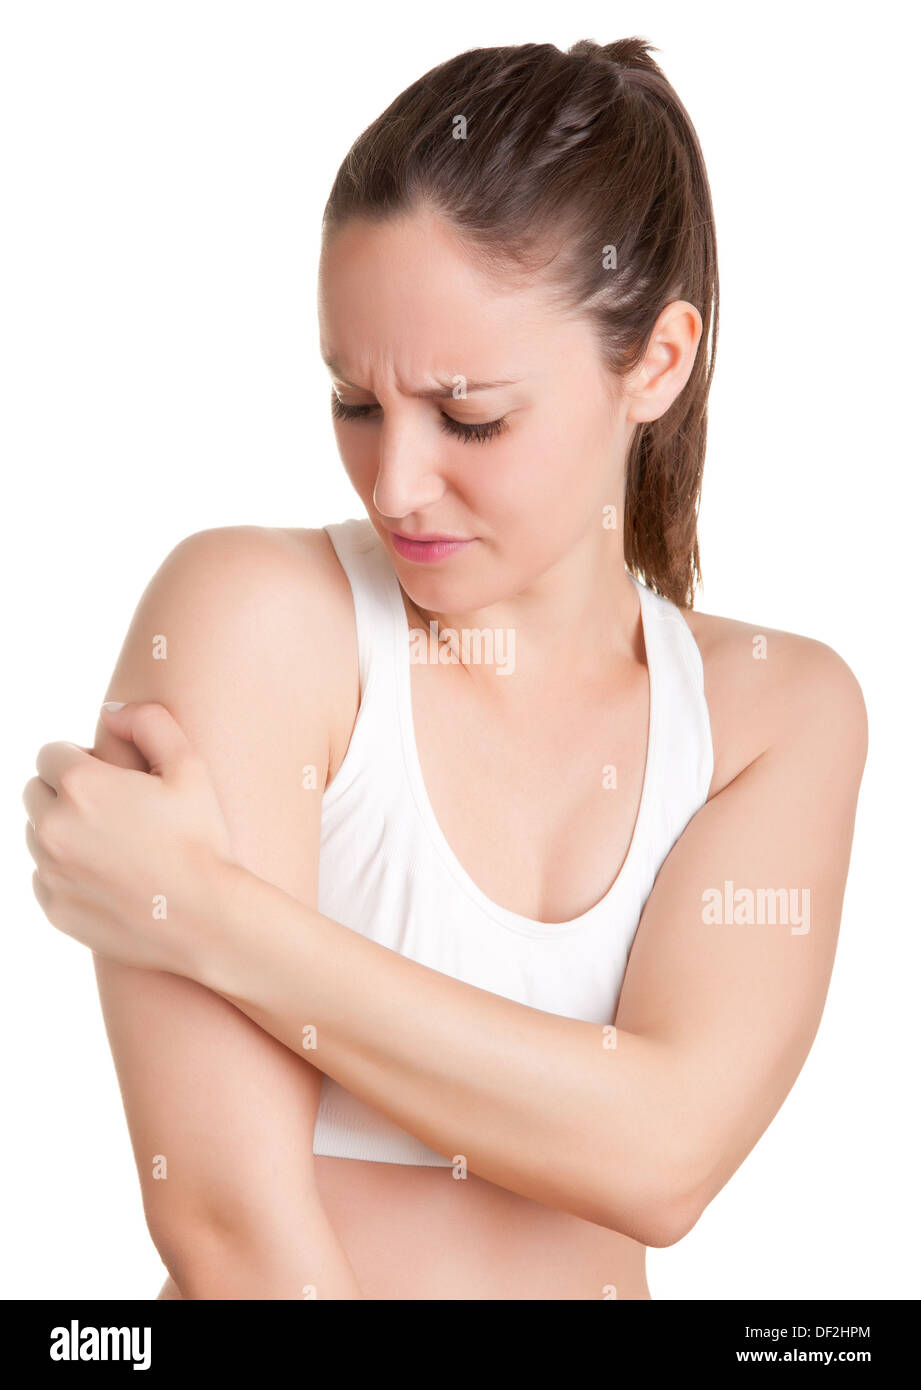 Female with pain in her arm, isolated in a white background - Stock Image